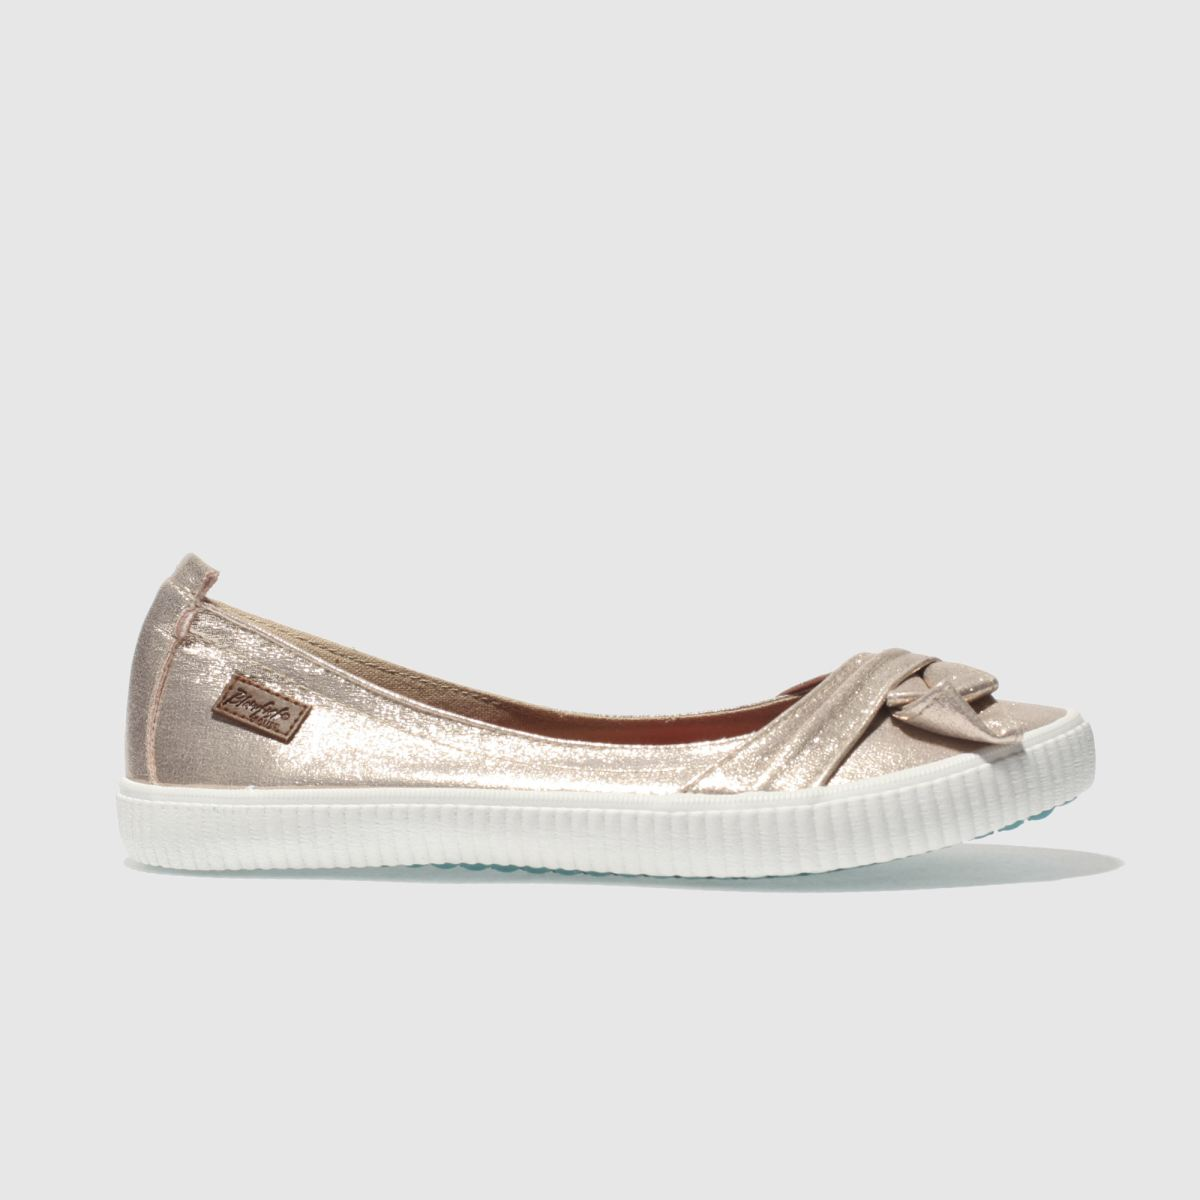 Blowfish Pale Pink Sansa Flat Shoes